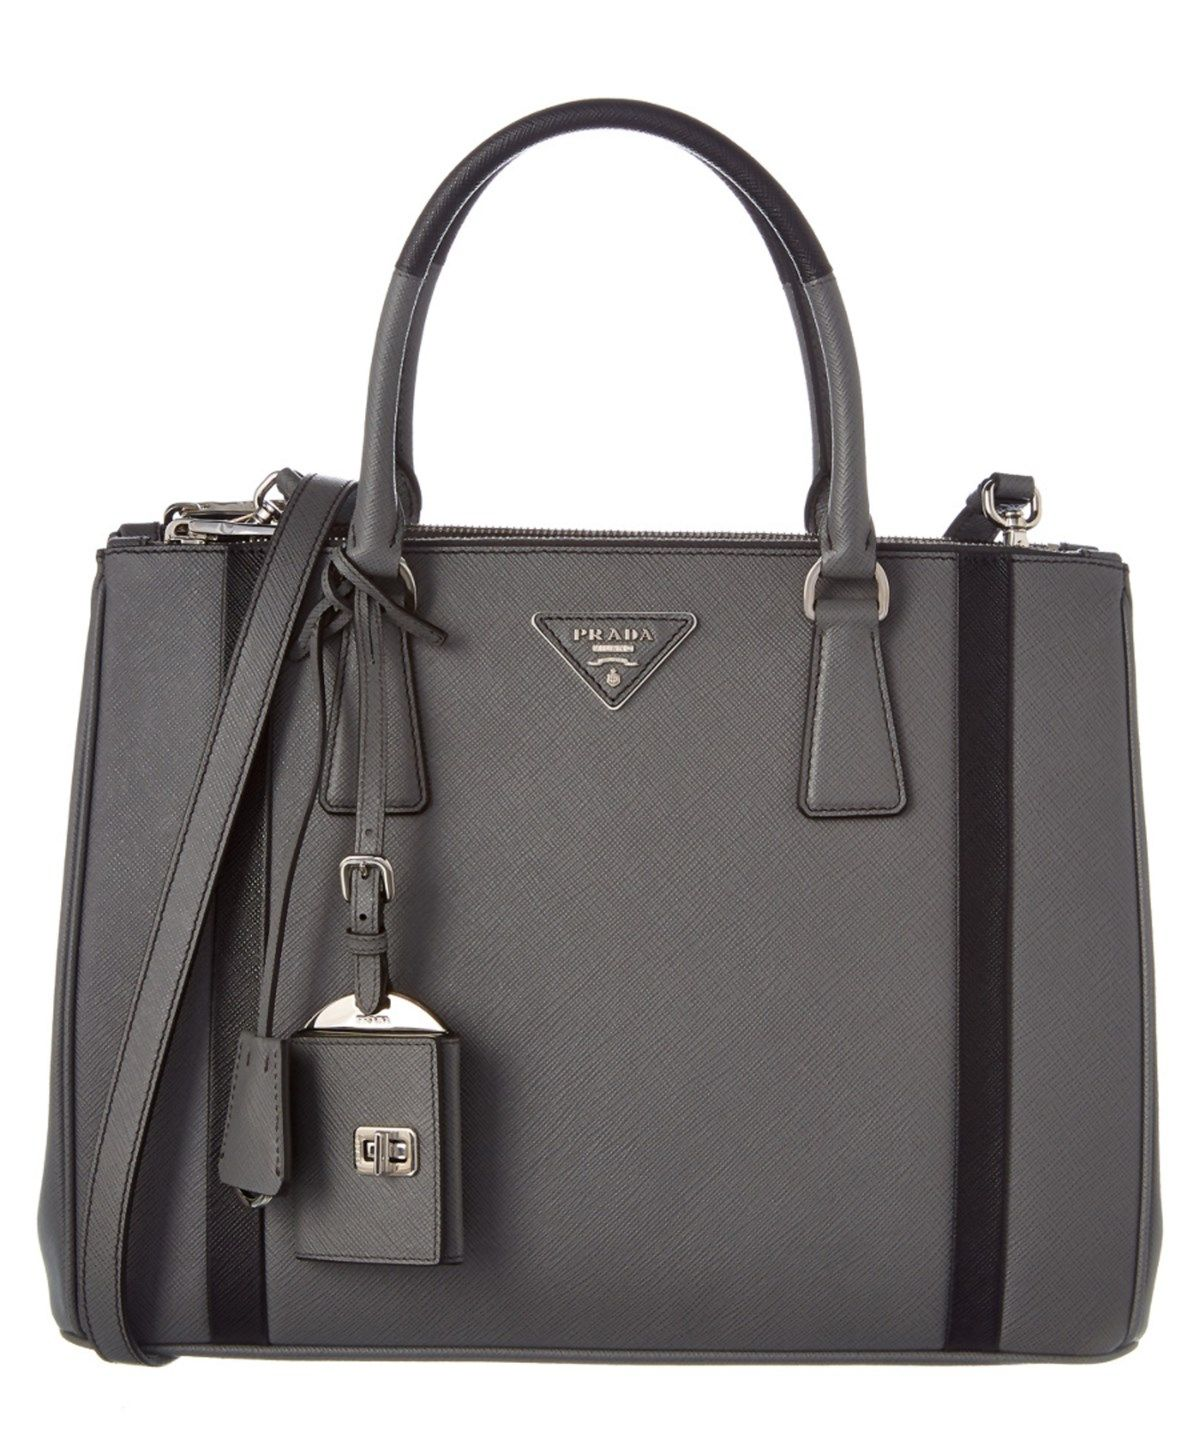 91e31ed57f07 PRADA Prada Galleria Saffiano Leather Tote .  prada  bags  shoulder bags   hand bags  leather  tote  lining